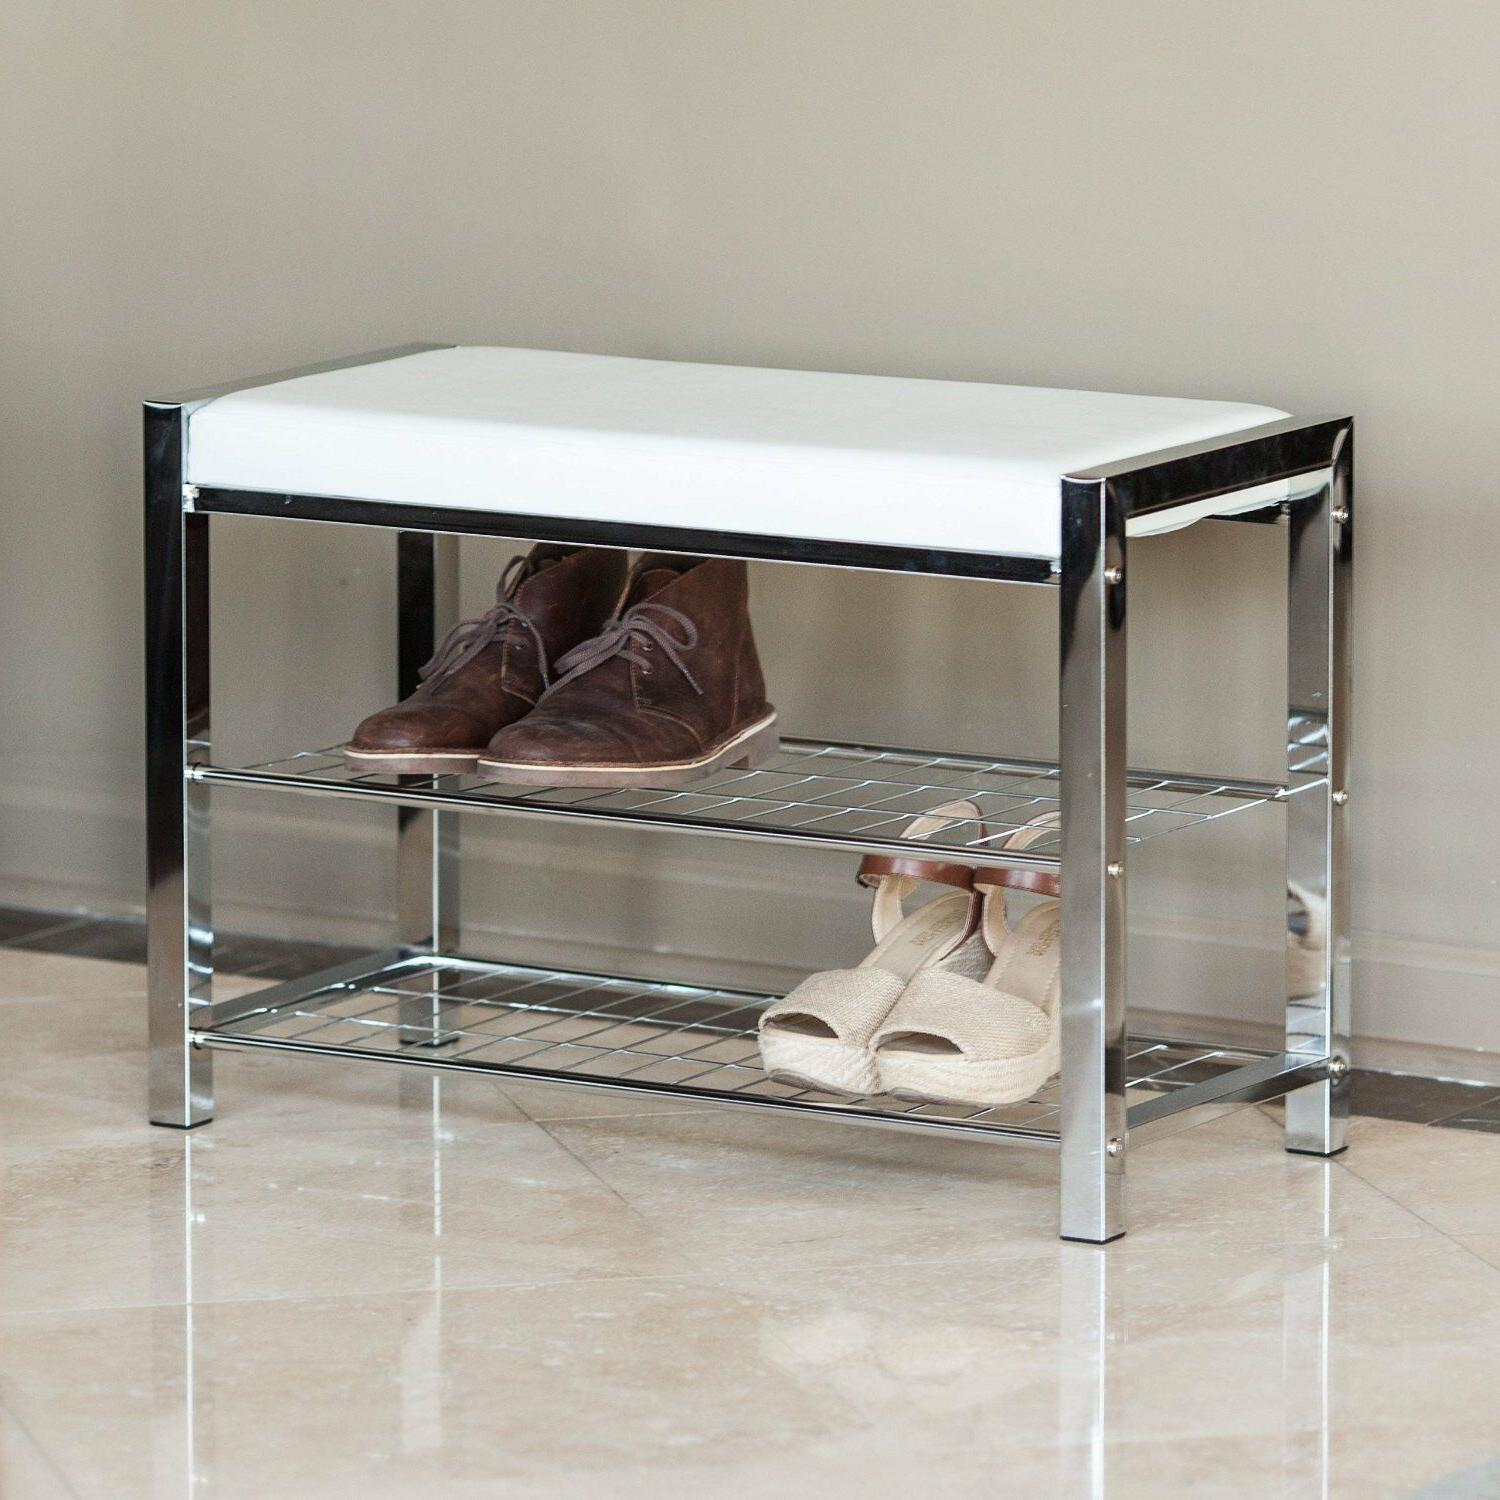 Danya B™ White Leatherette Storage Entryway Bench With Chr